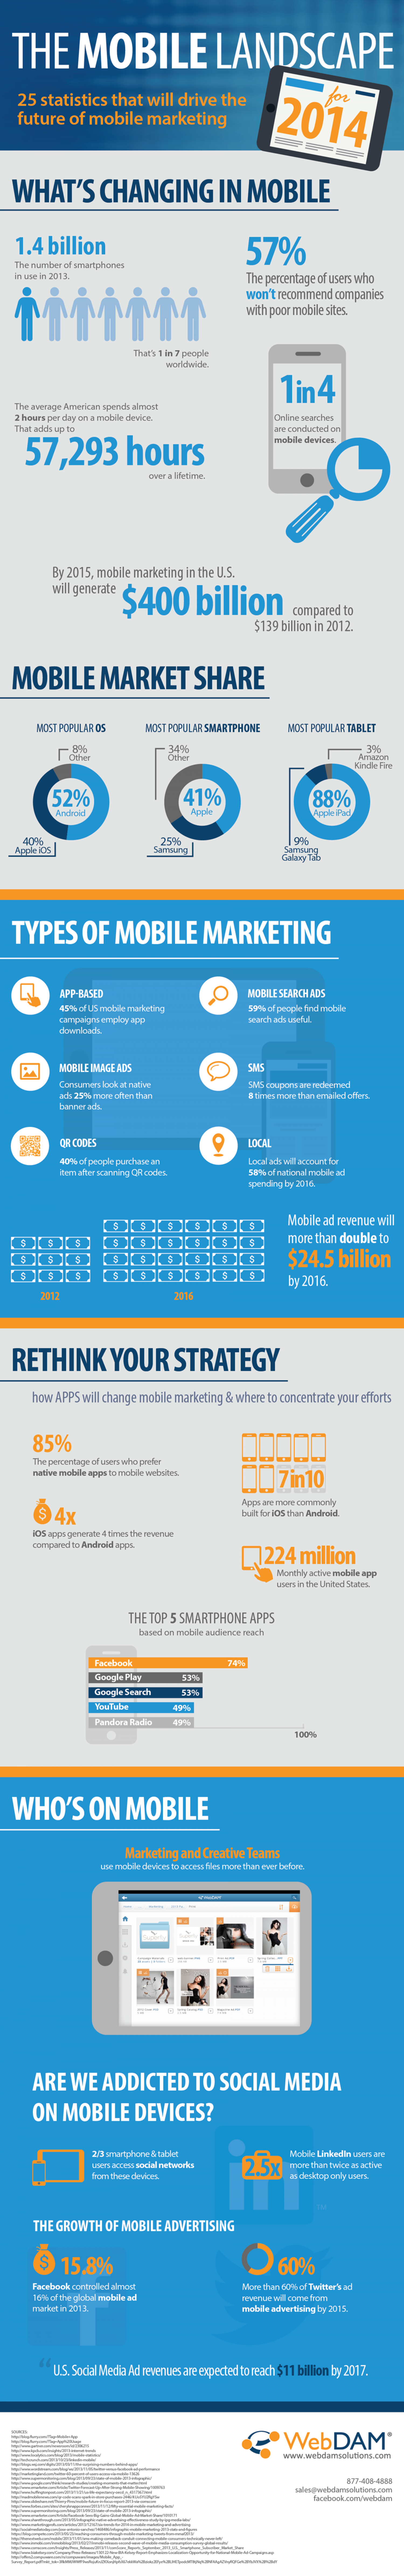 The Mobile Landscape for 2014 Infographic